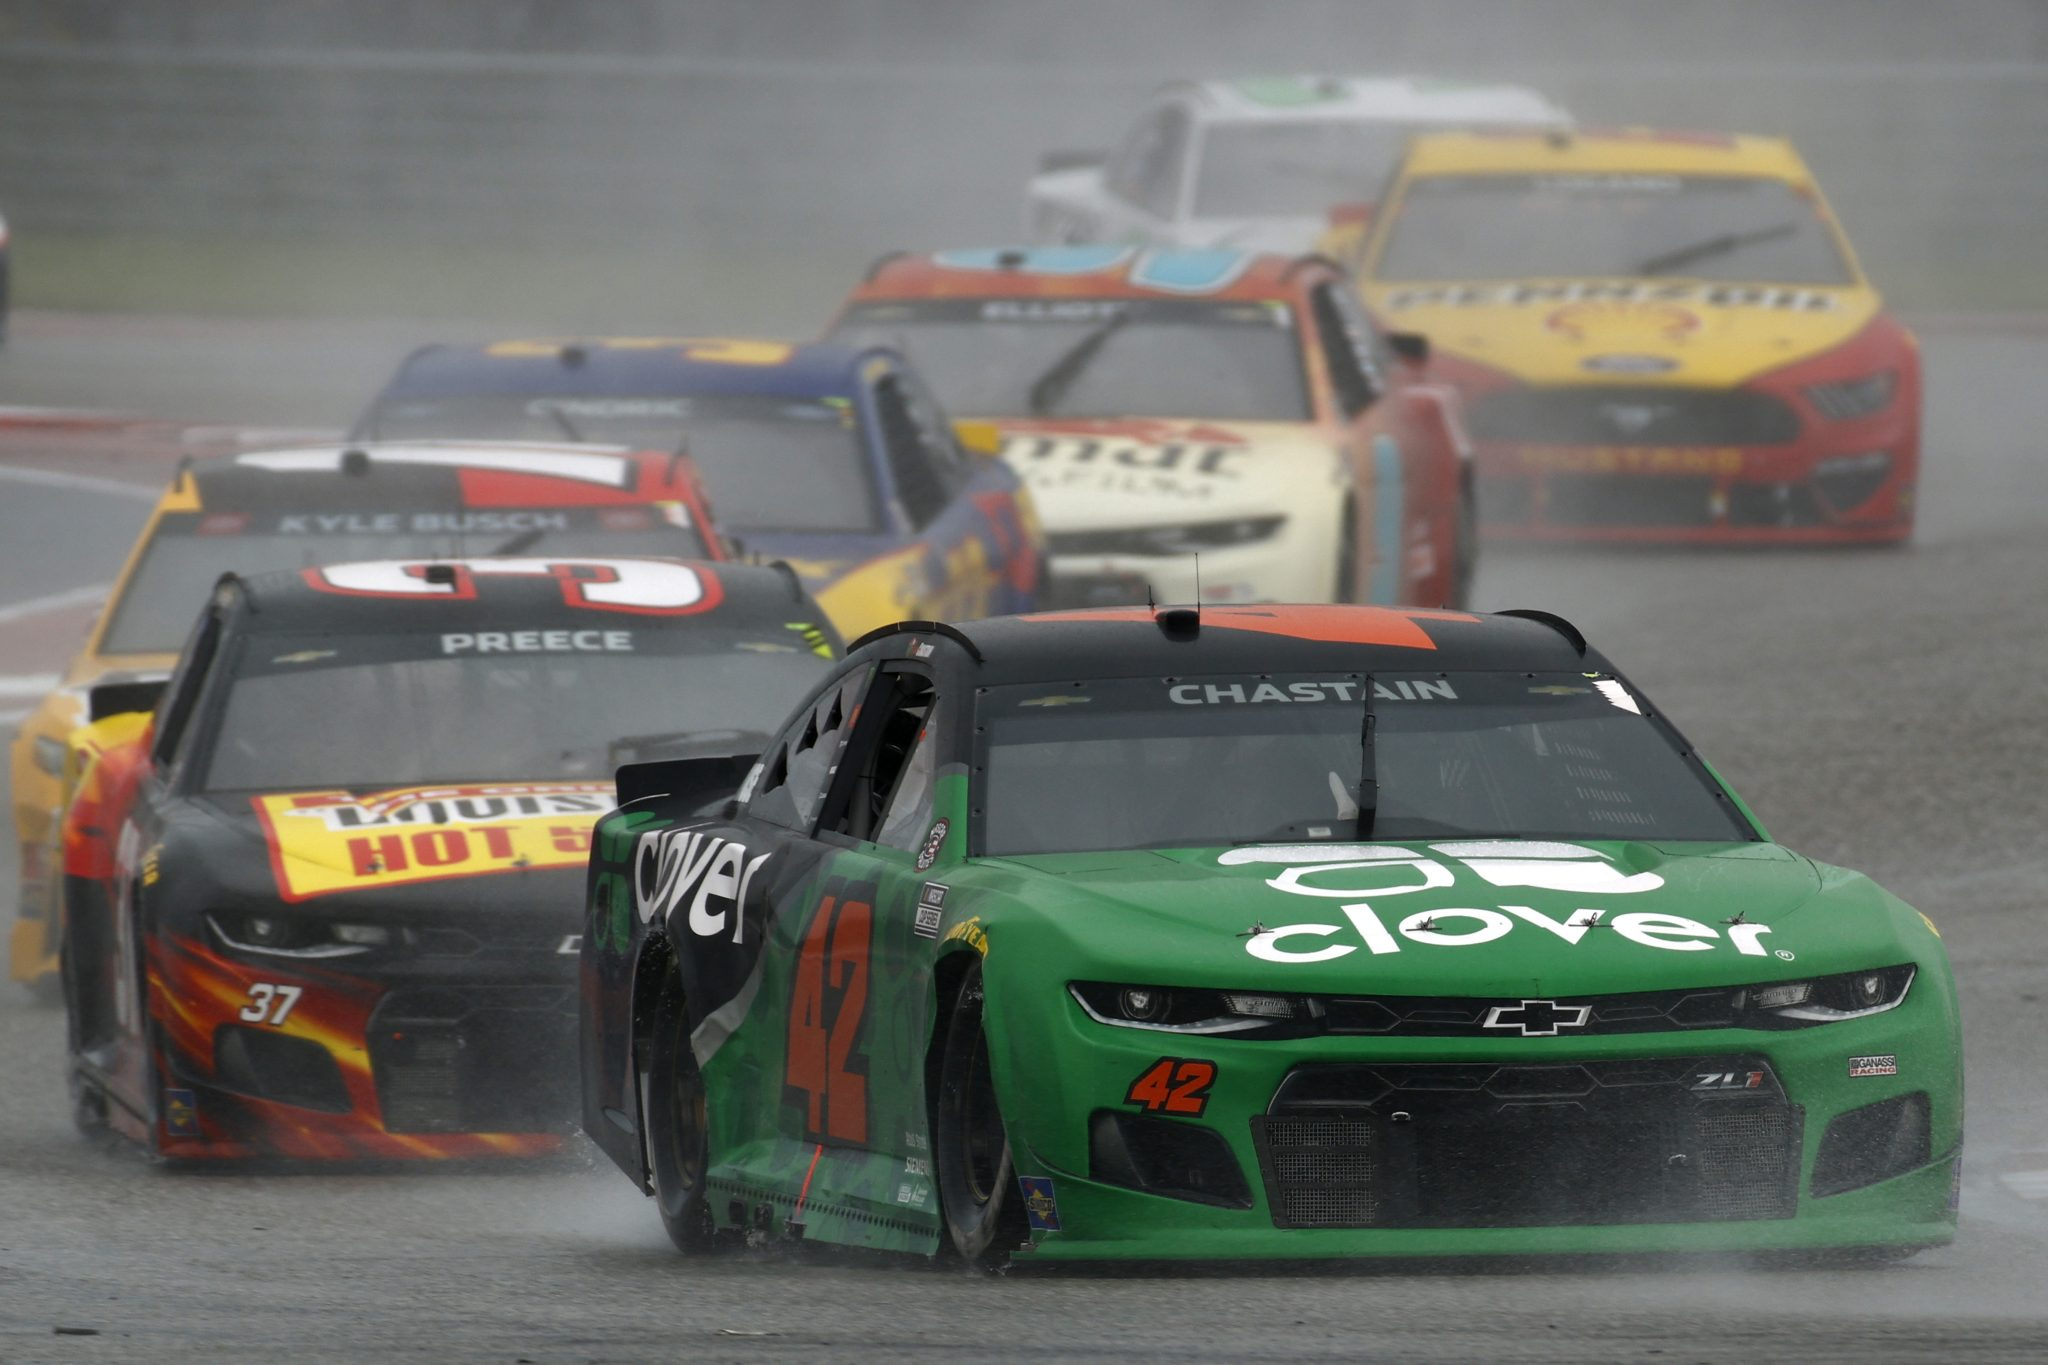 AUSTIN, TEXAS - MAY 23: Ross Chastain, driver of the #42 Clover Chevrolet, drives during the NASCAR Cup Series EchoPark Texas Grand Prix at Circuit of The Americas on May 23, 2021 in Austin, Texas. (Photo by Jared C. Tilton/Getty Images) | Getty Images